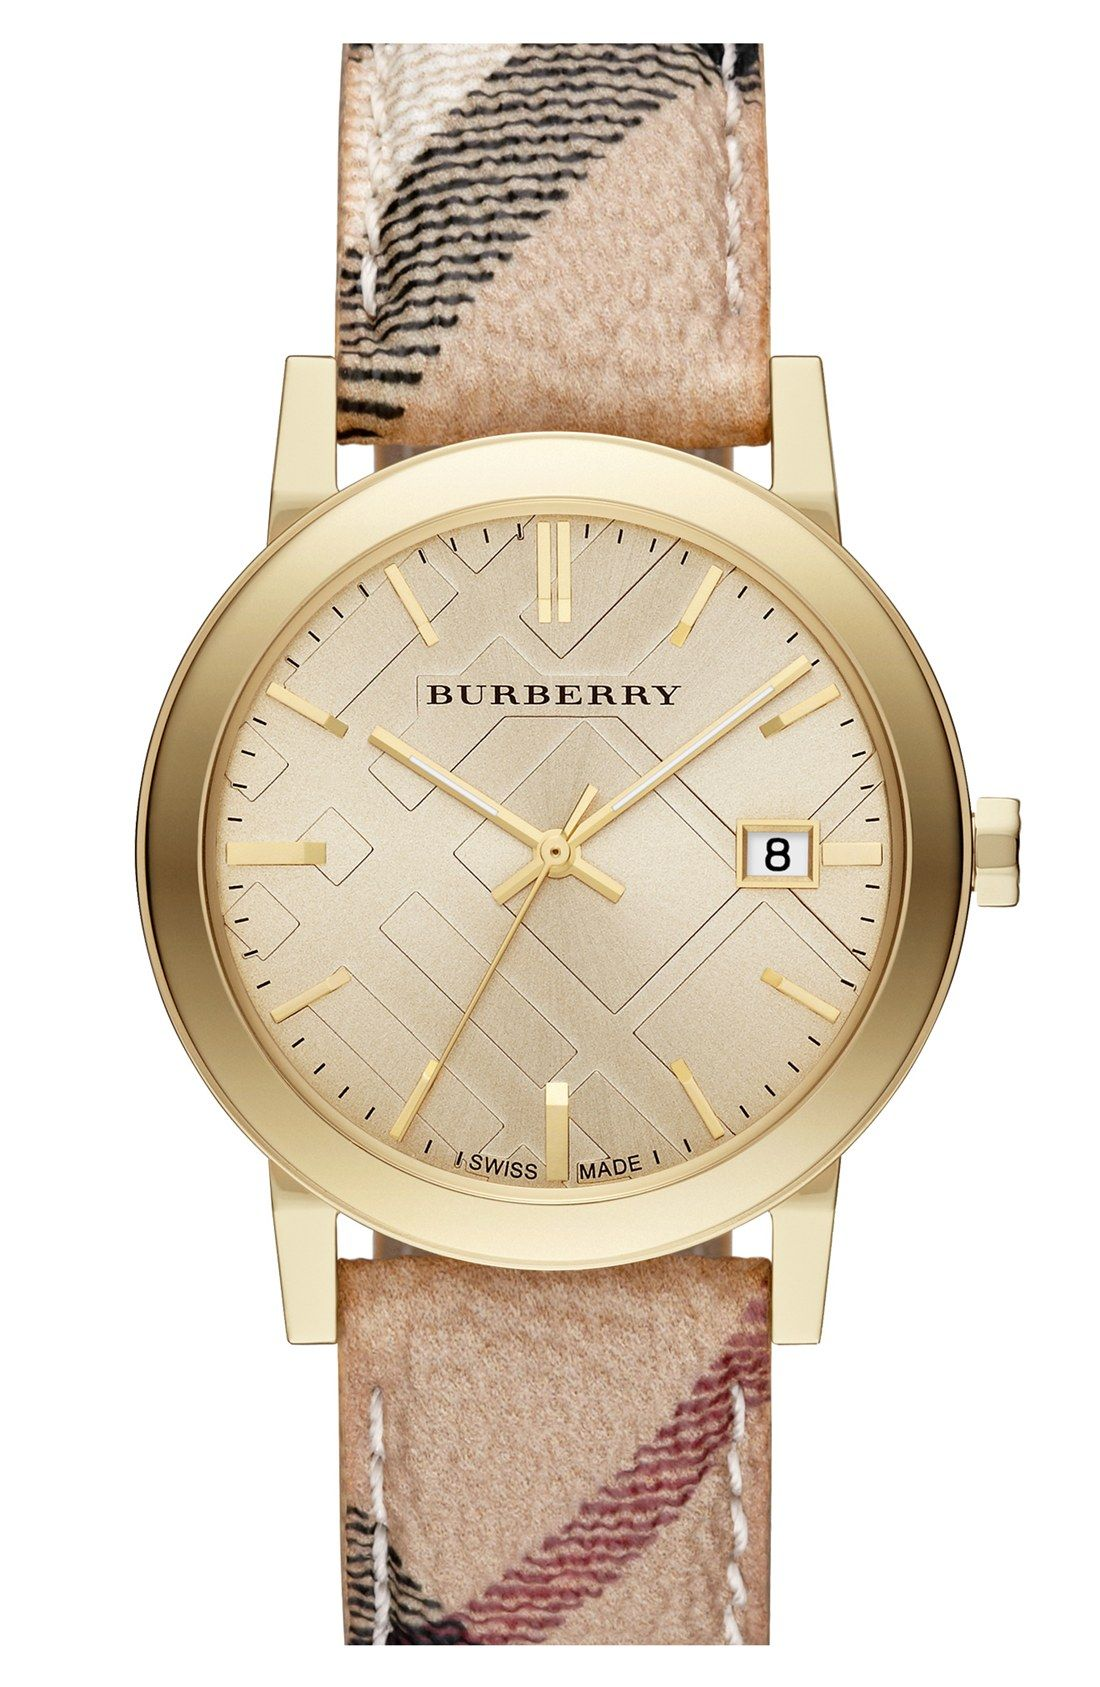 Fabulous burberry watch with a sapphire crystal face and gold details top pins for Burberry watches